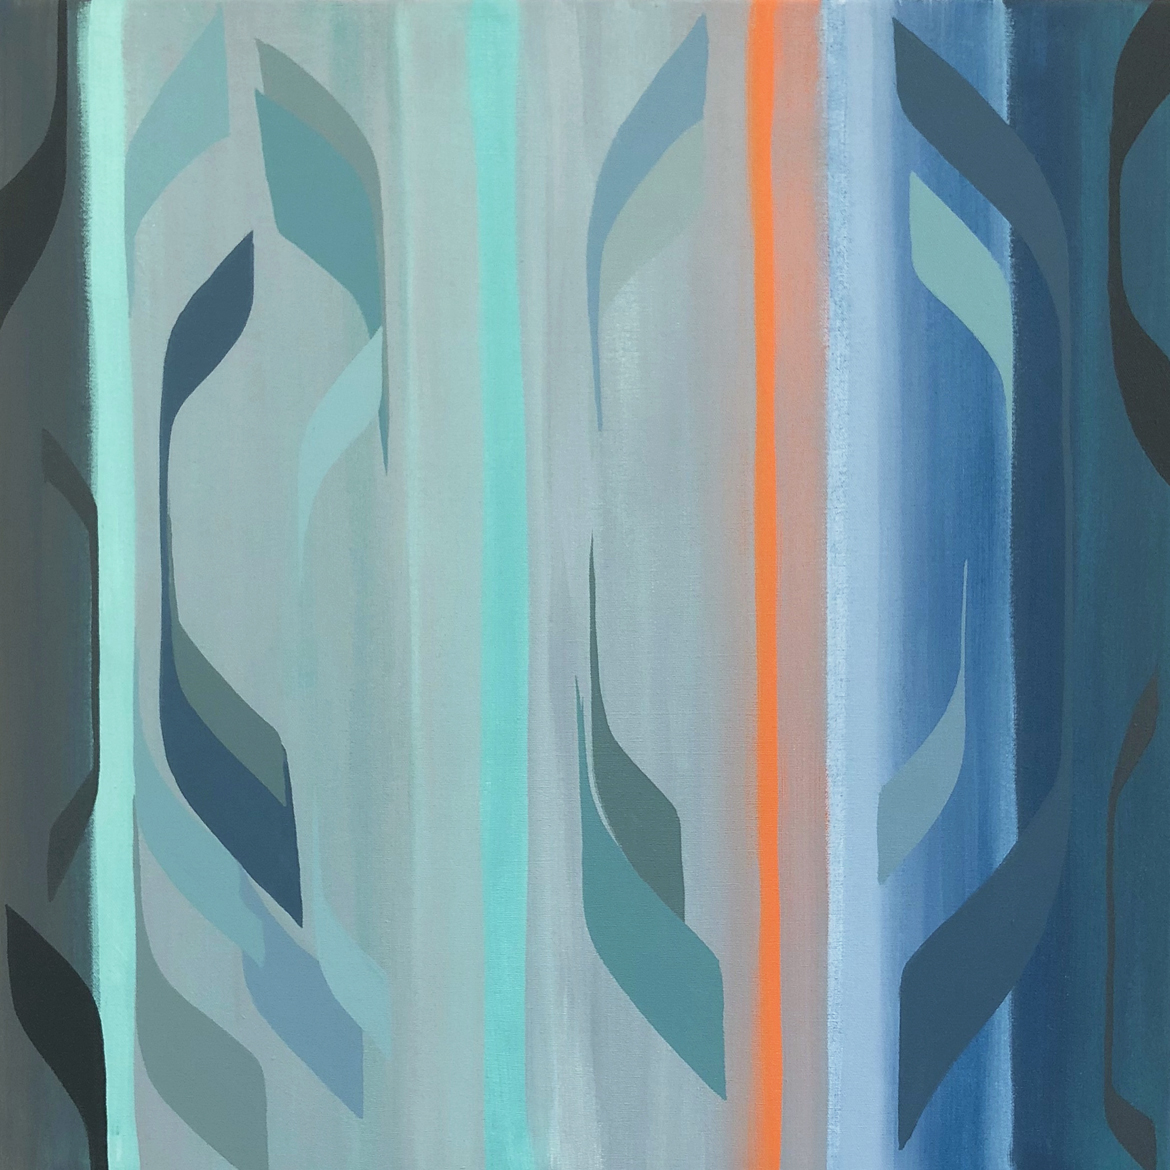 Amanda-Reeves-abstract-art-painting-contemporary-art-Vancouver-Elissa-Cristall-Gallery